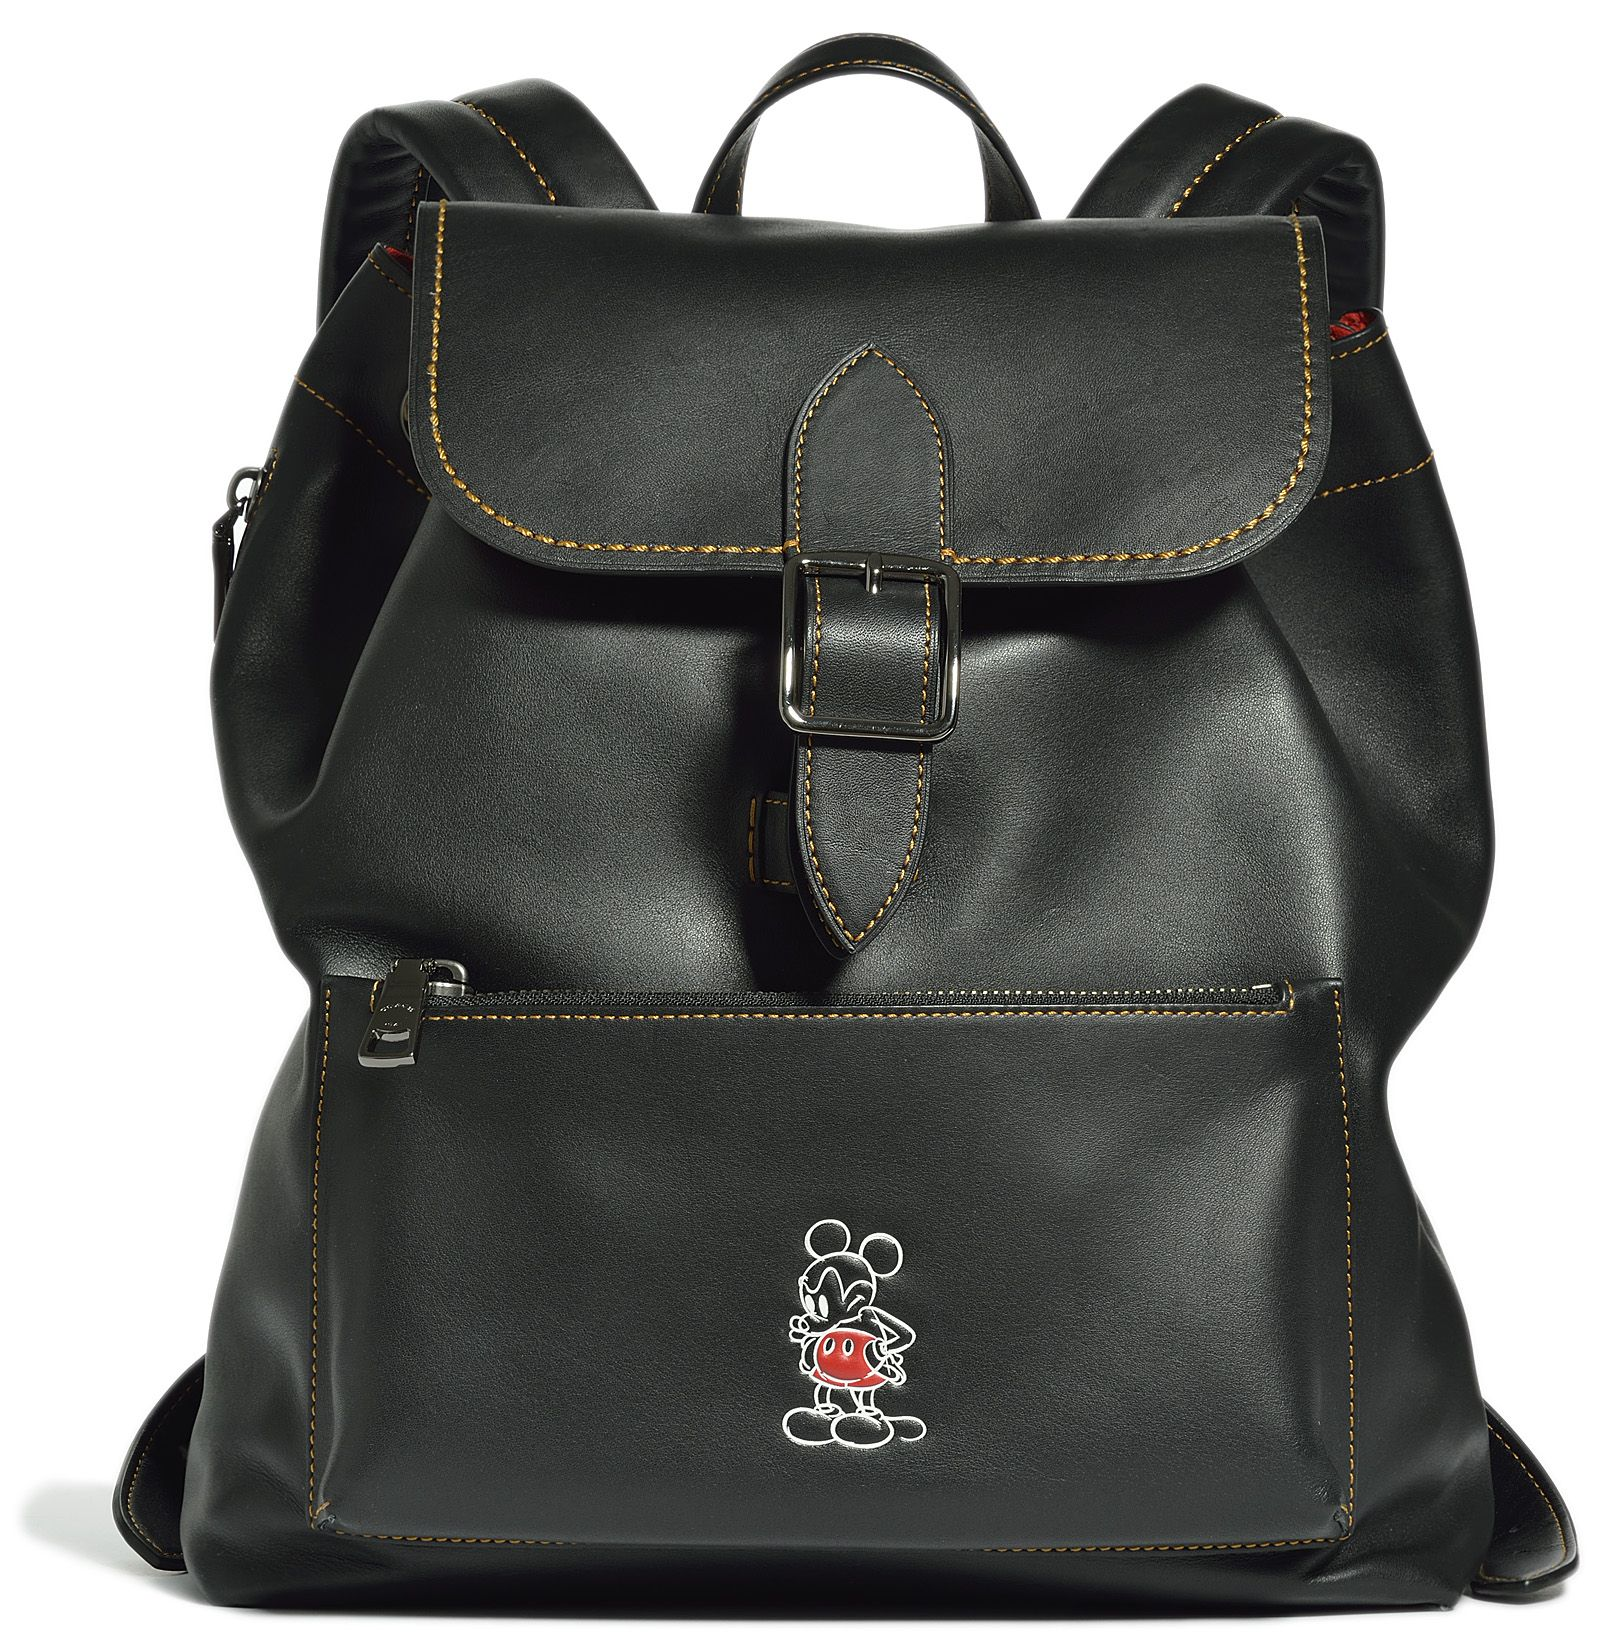 4bce326848 purchase 2016 new coach prairie satchel in pebble leather aab2f 5279f   coupon code for coach disney bag 7. june 10 2016 1601 1650 510b1 d1e49